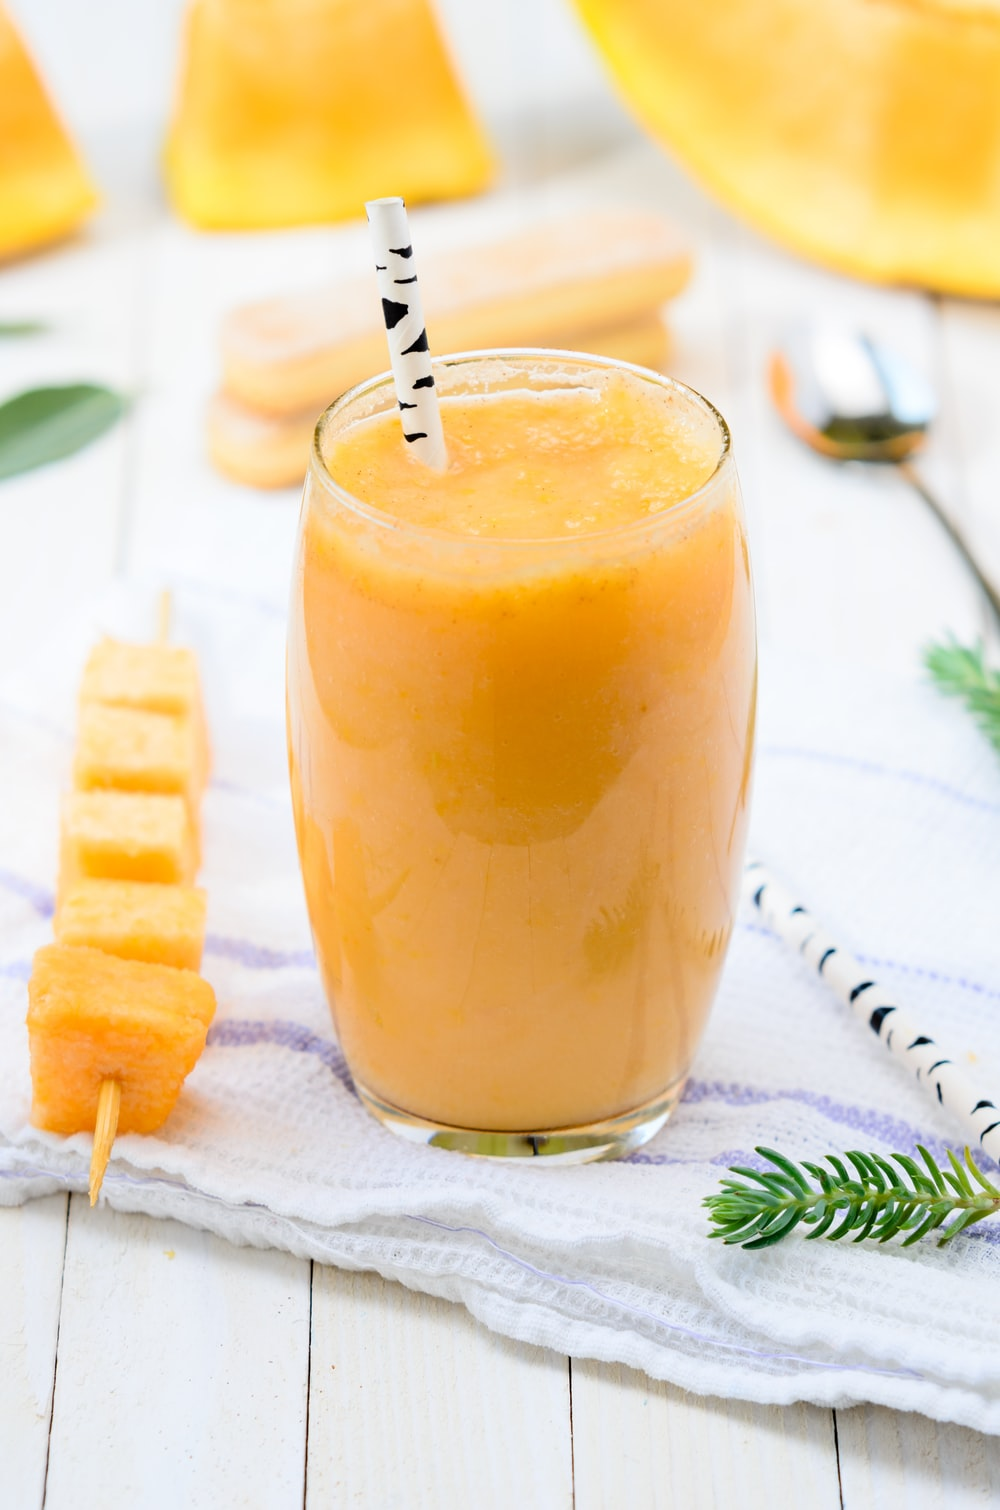 yellow fruit juice on glass cup